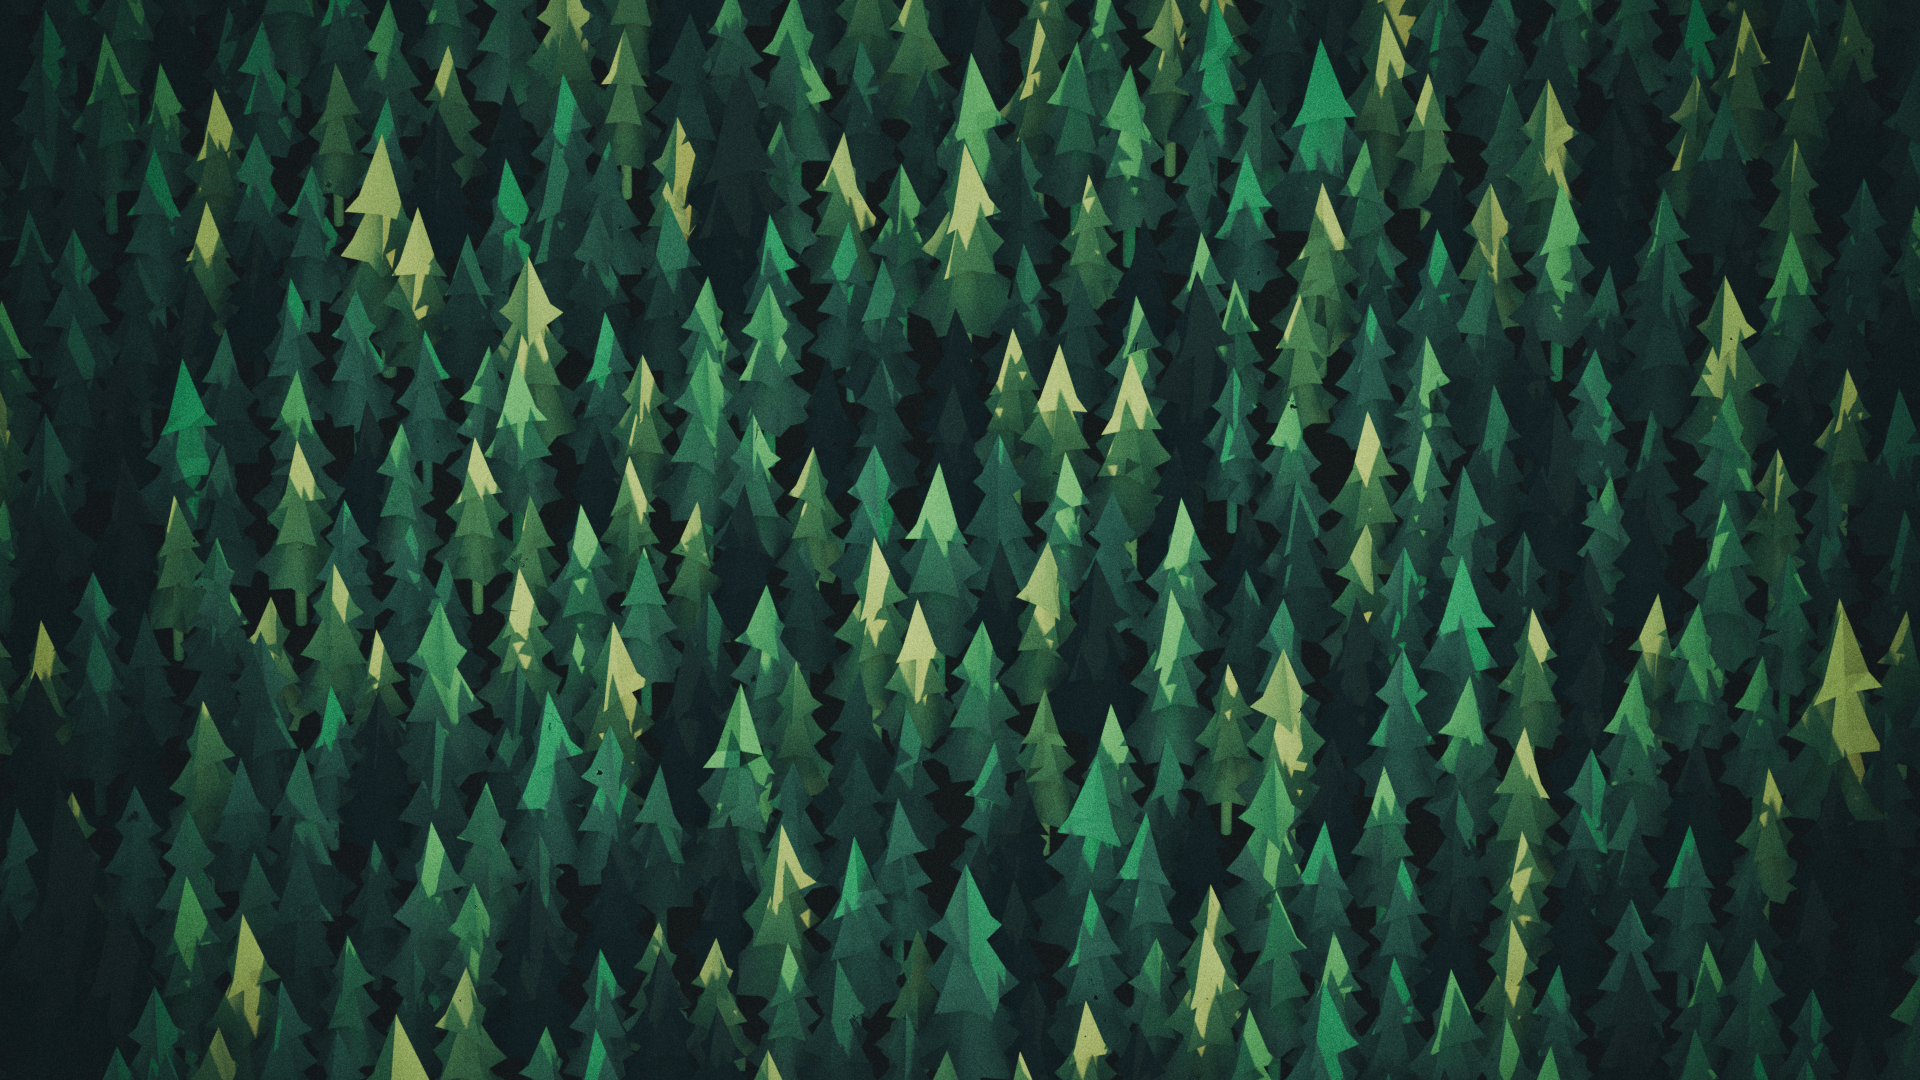 100 Wallpaper Collection All 1920x1080 Post Minimalist Wallpaper Forest Wallpaper Tree Wallpaper